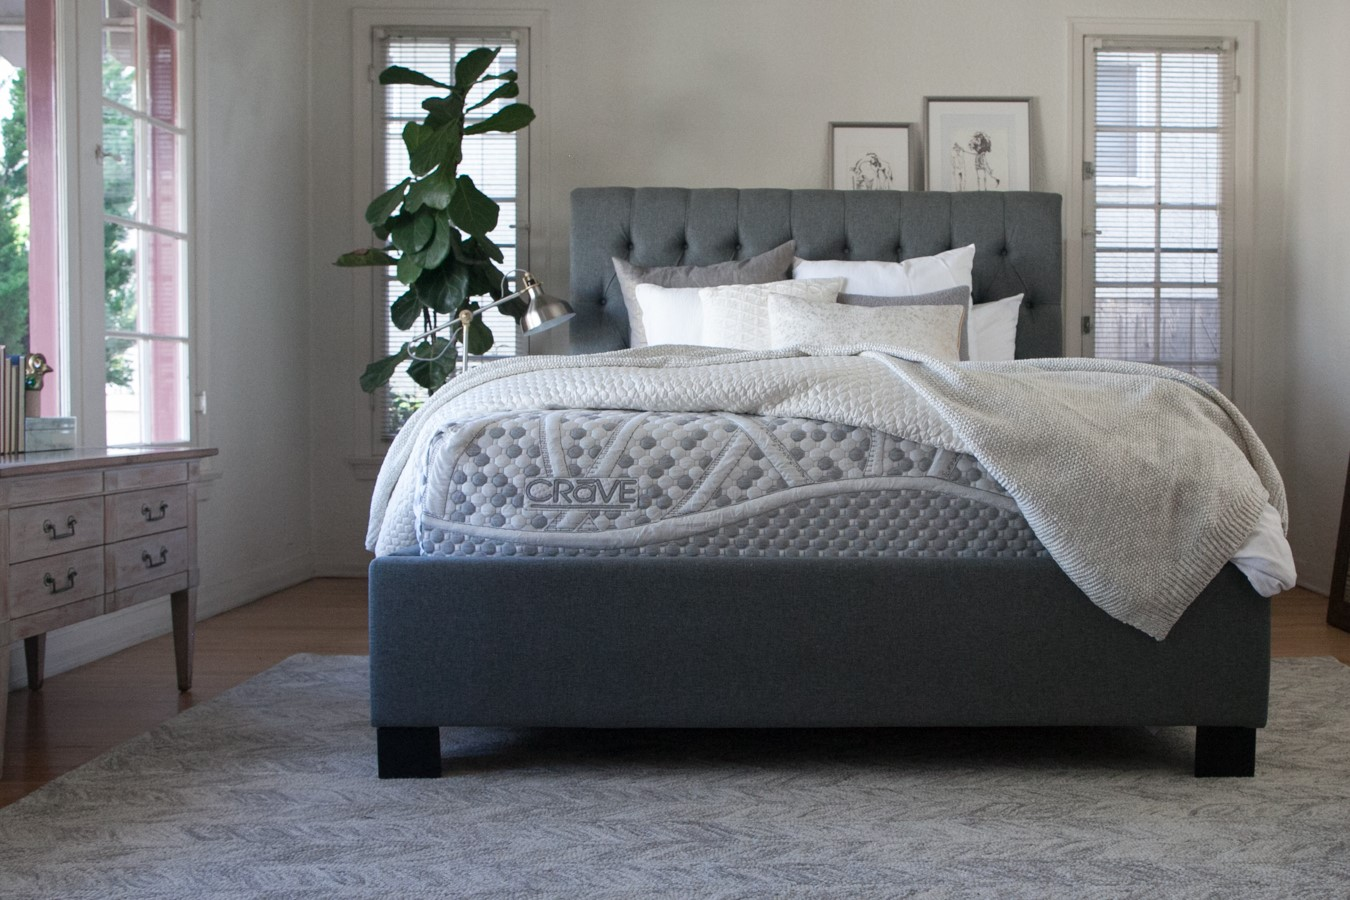 Buying A Mattress Buying A Mattress Made In Usa The Ultimate Source List